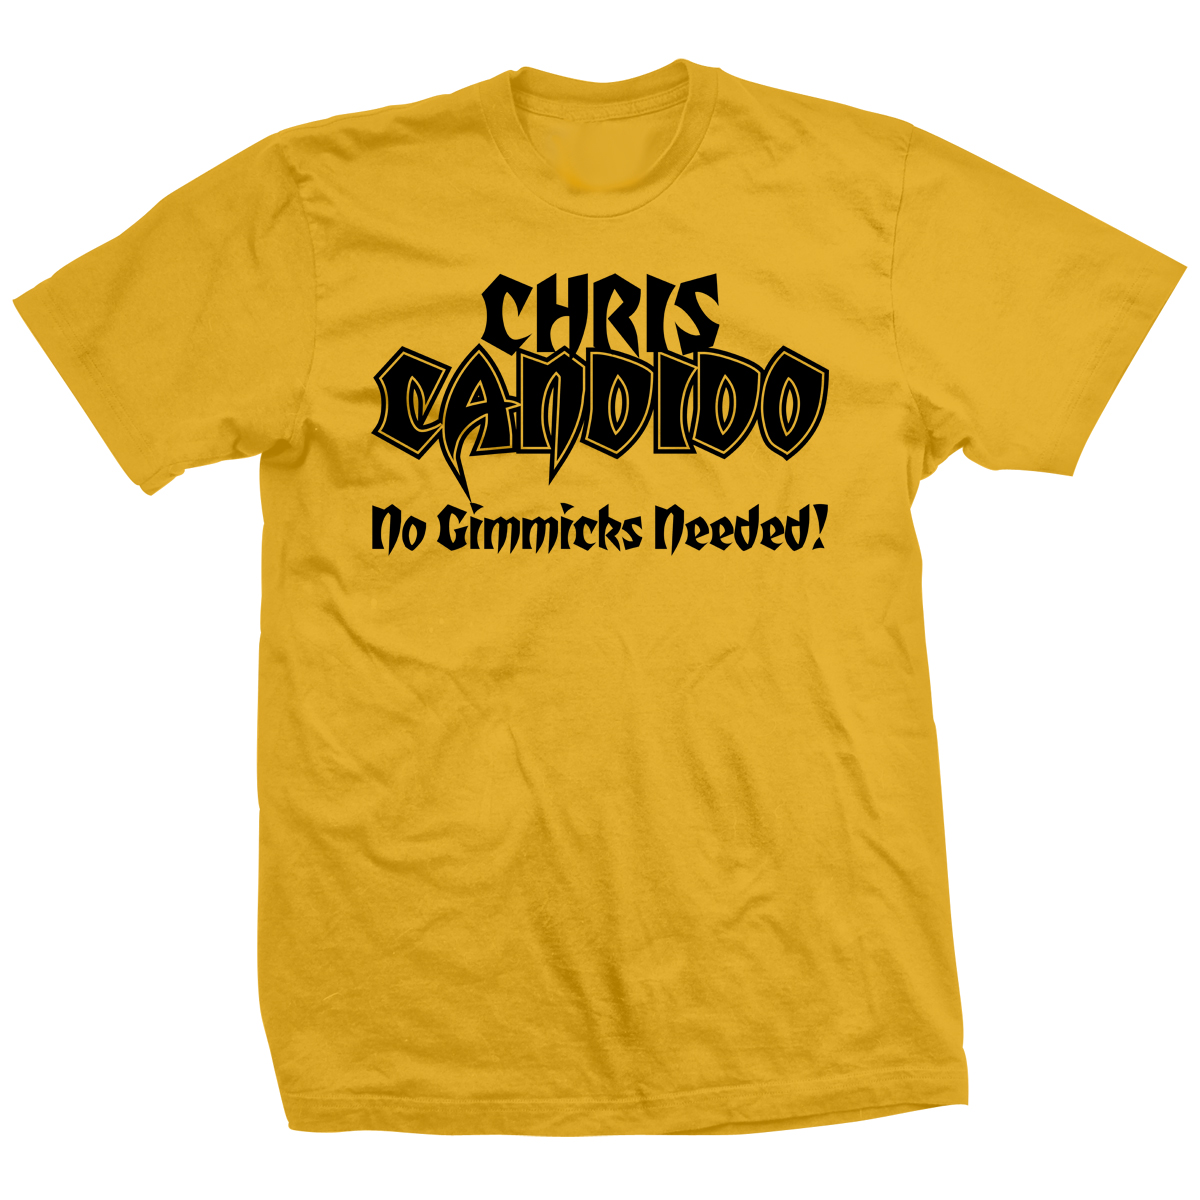 Candido Extreme T-shirt